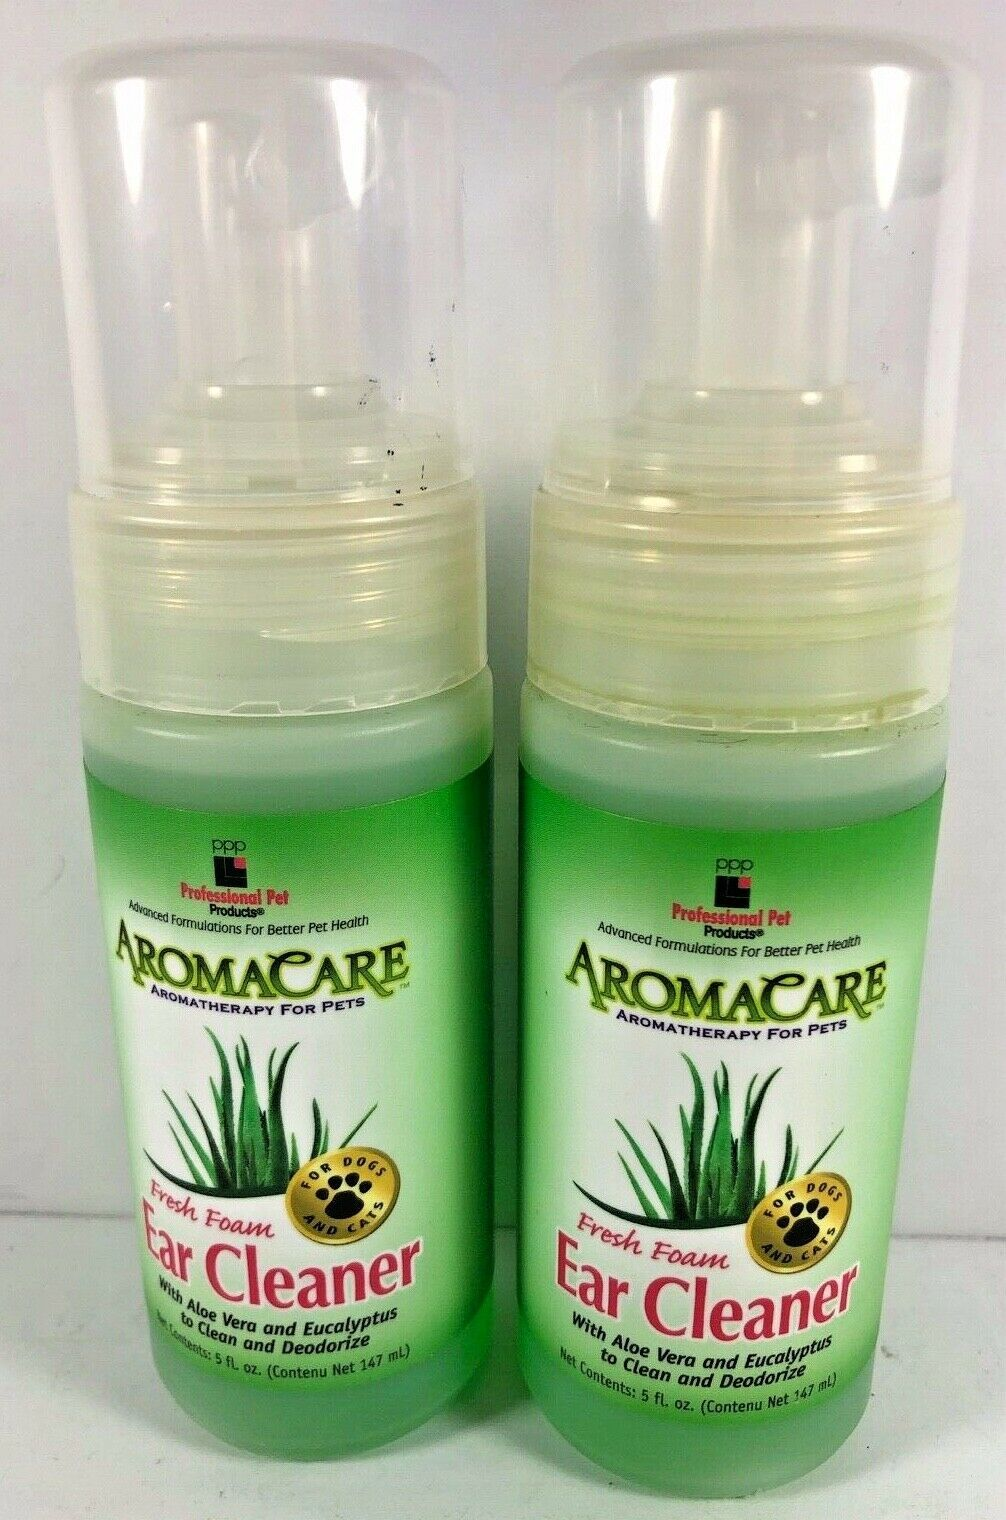 Primary image for Lot of 2 Professional Pet Products AromaCare Fresh Foam Pet Ear Cleaner 5 oz ea